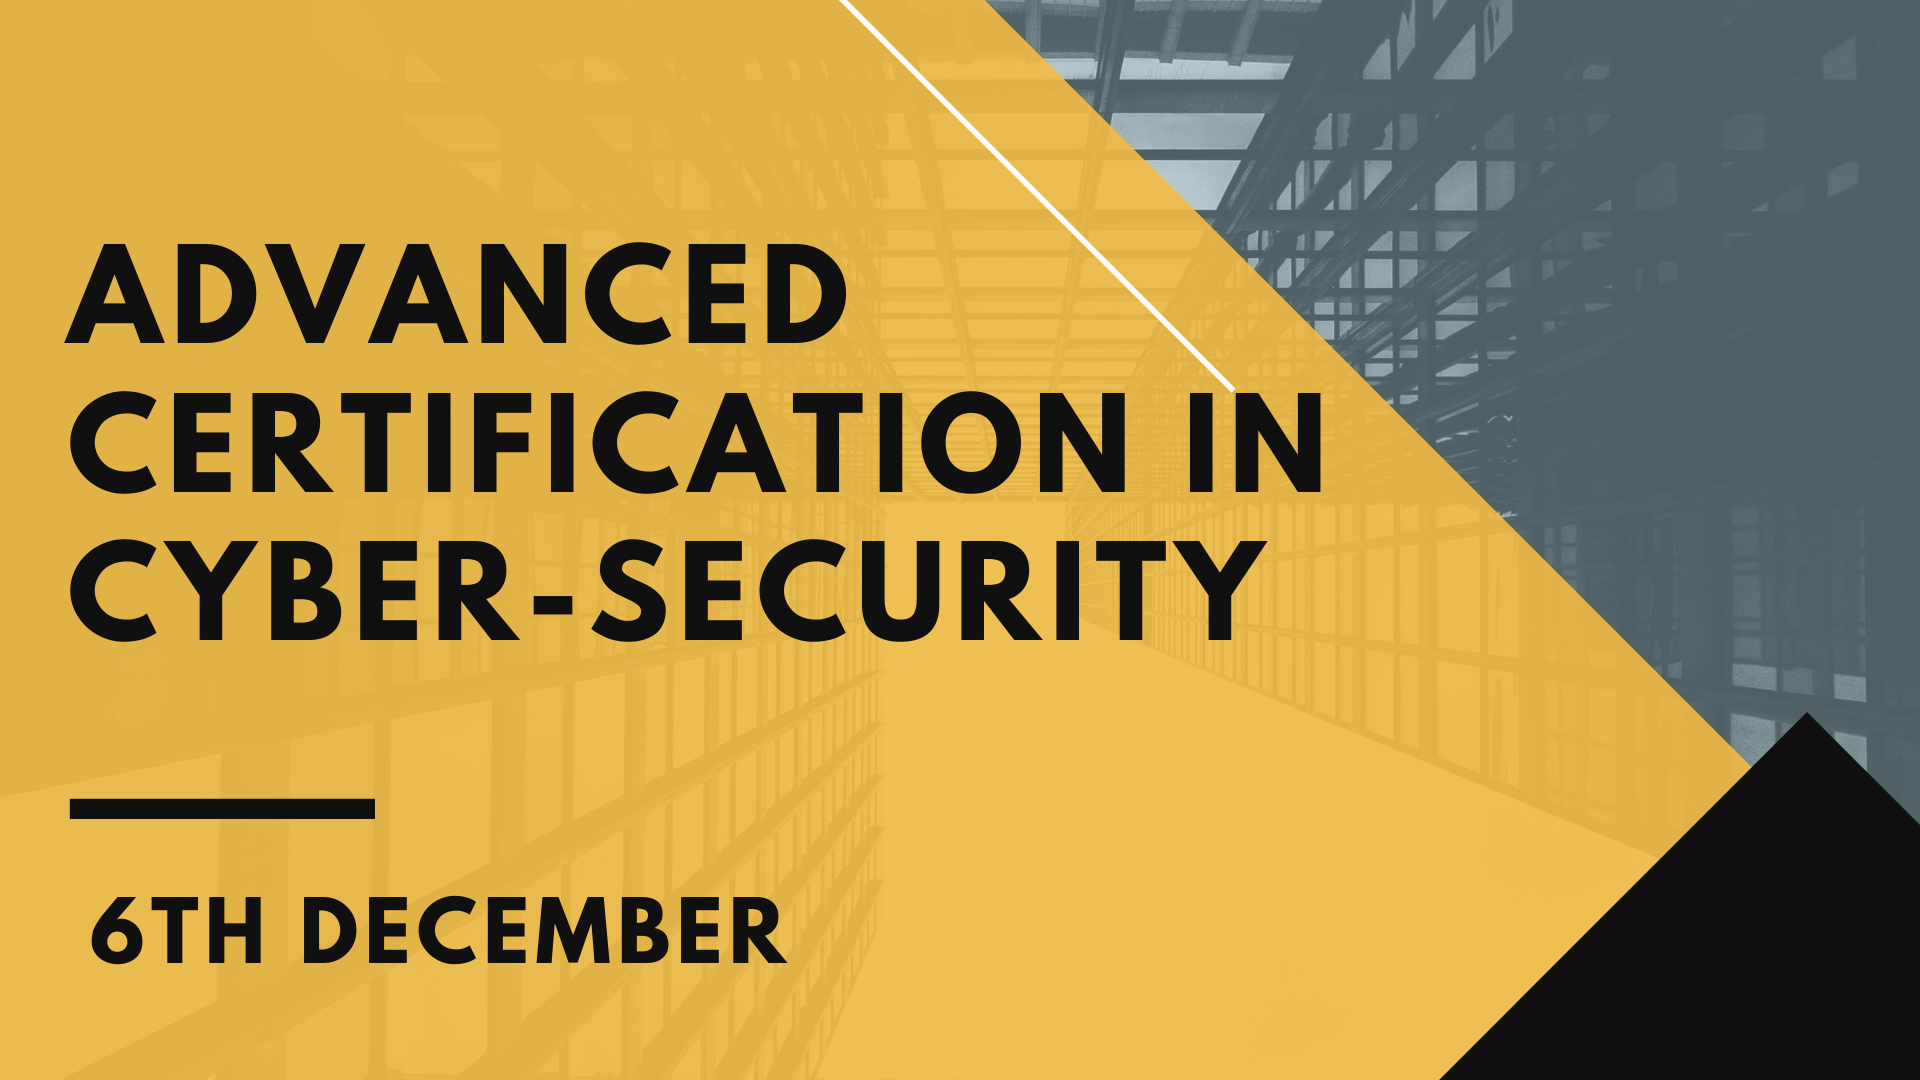 Advanced Certification in Cyber Security